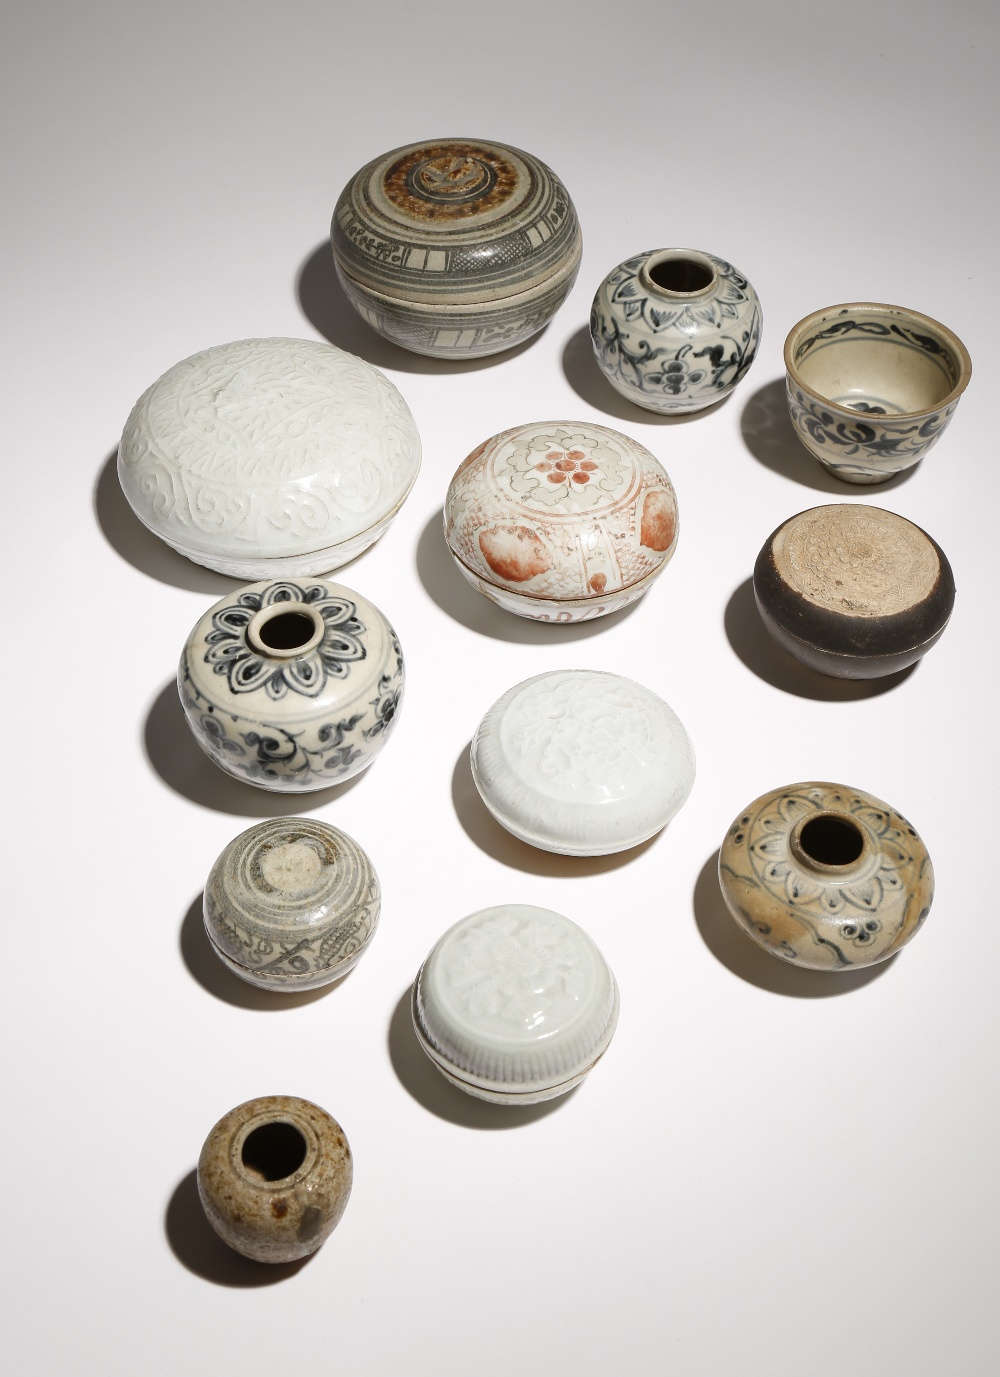 A SMALL GROUP OF SOUTHEAST ASIAN CERAMIC ITEMS 15TH CENTURY AND LATER Comprising: seven circular